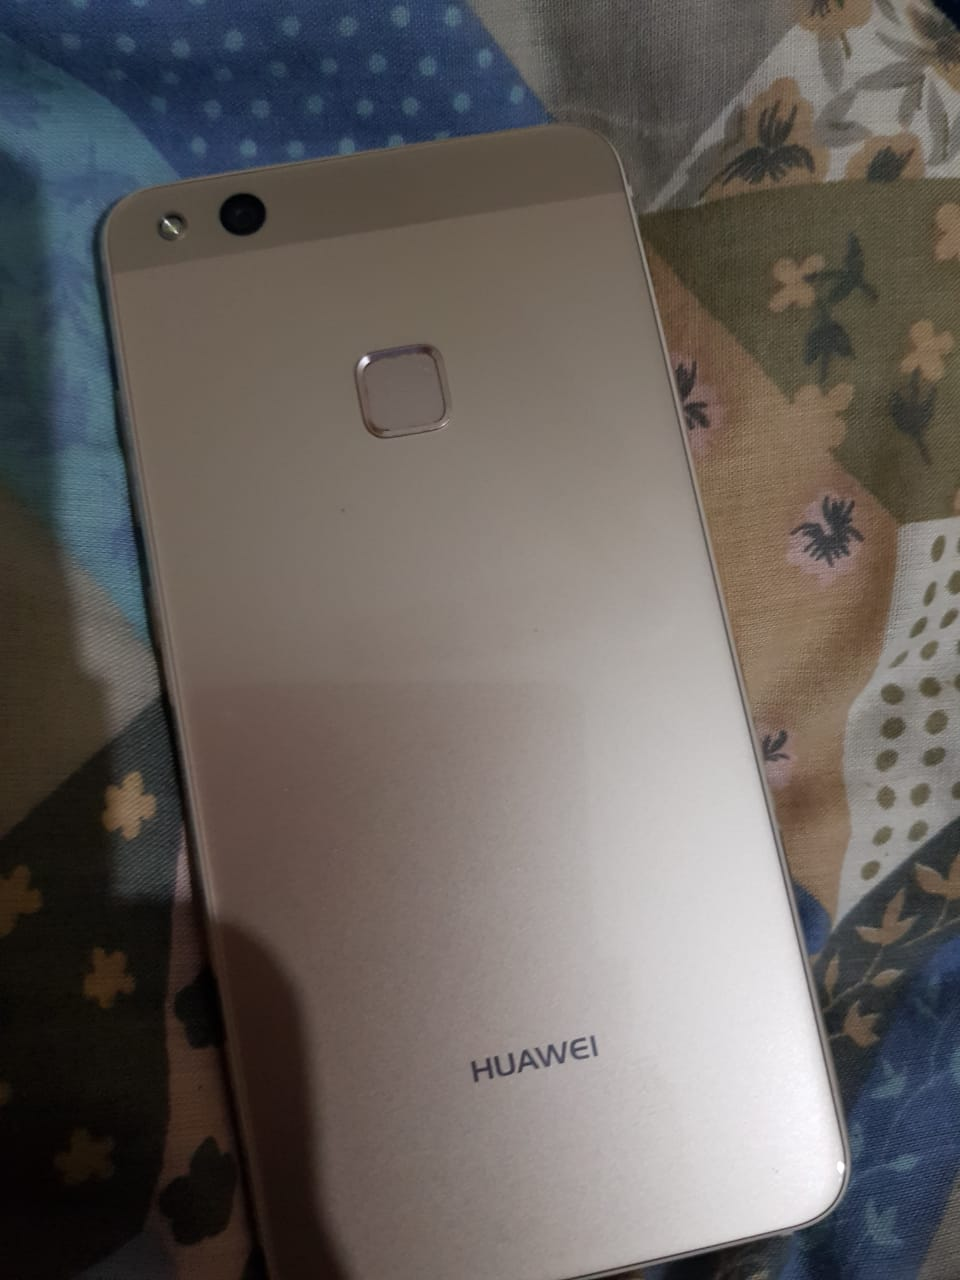 Huawei p10 lite available for sale - photo 2